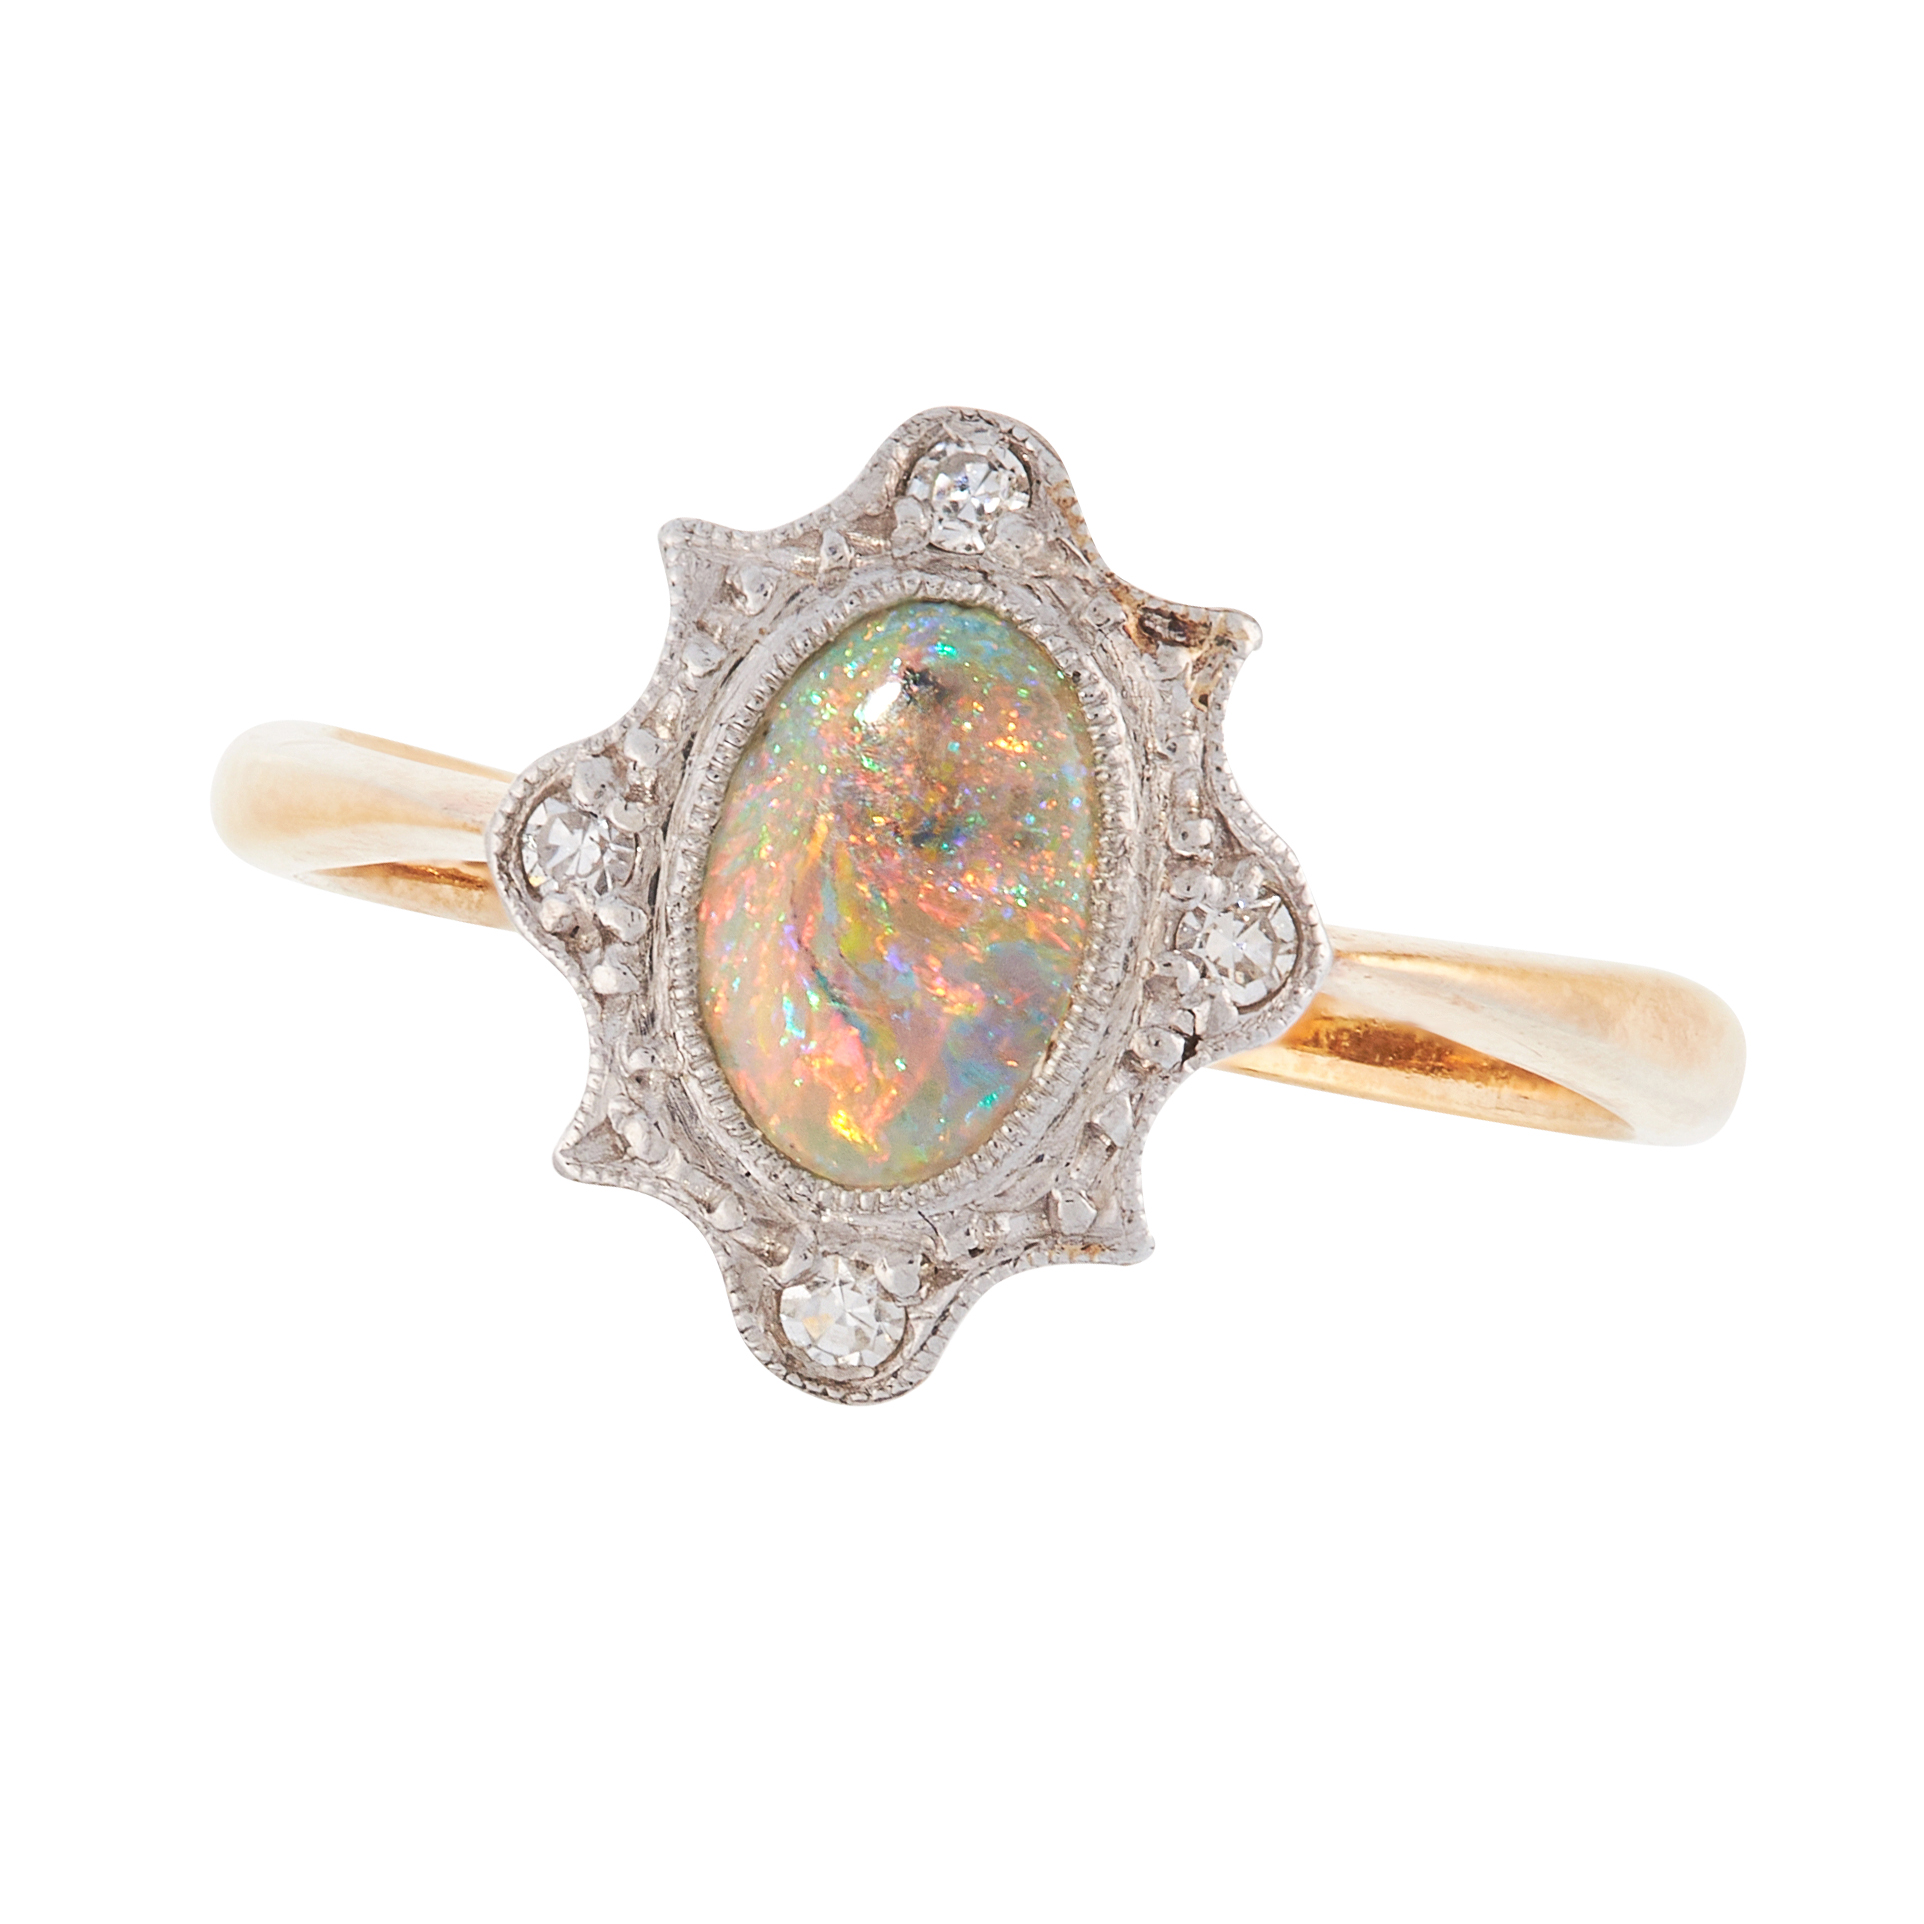 AN OPAL AND DIAMOND DRESS RING, CIRCA 1940 in 18ct yellow gold and platinum, set with an oval